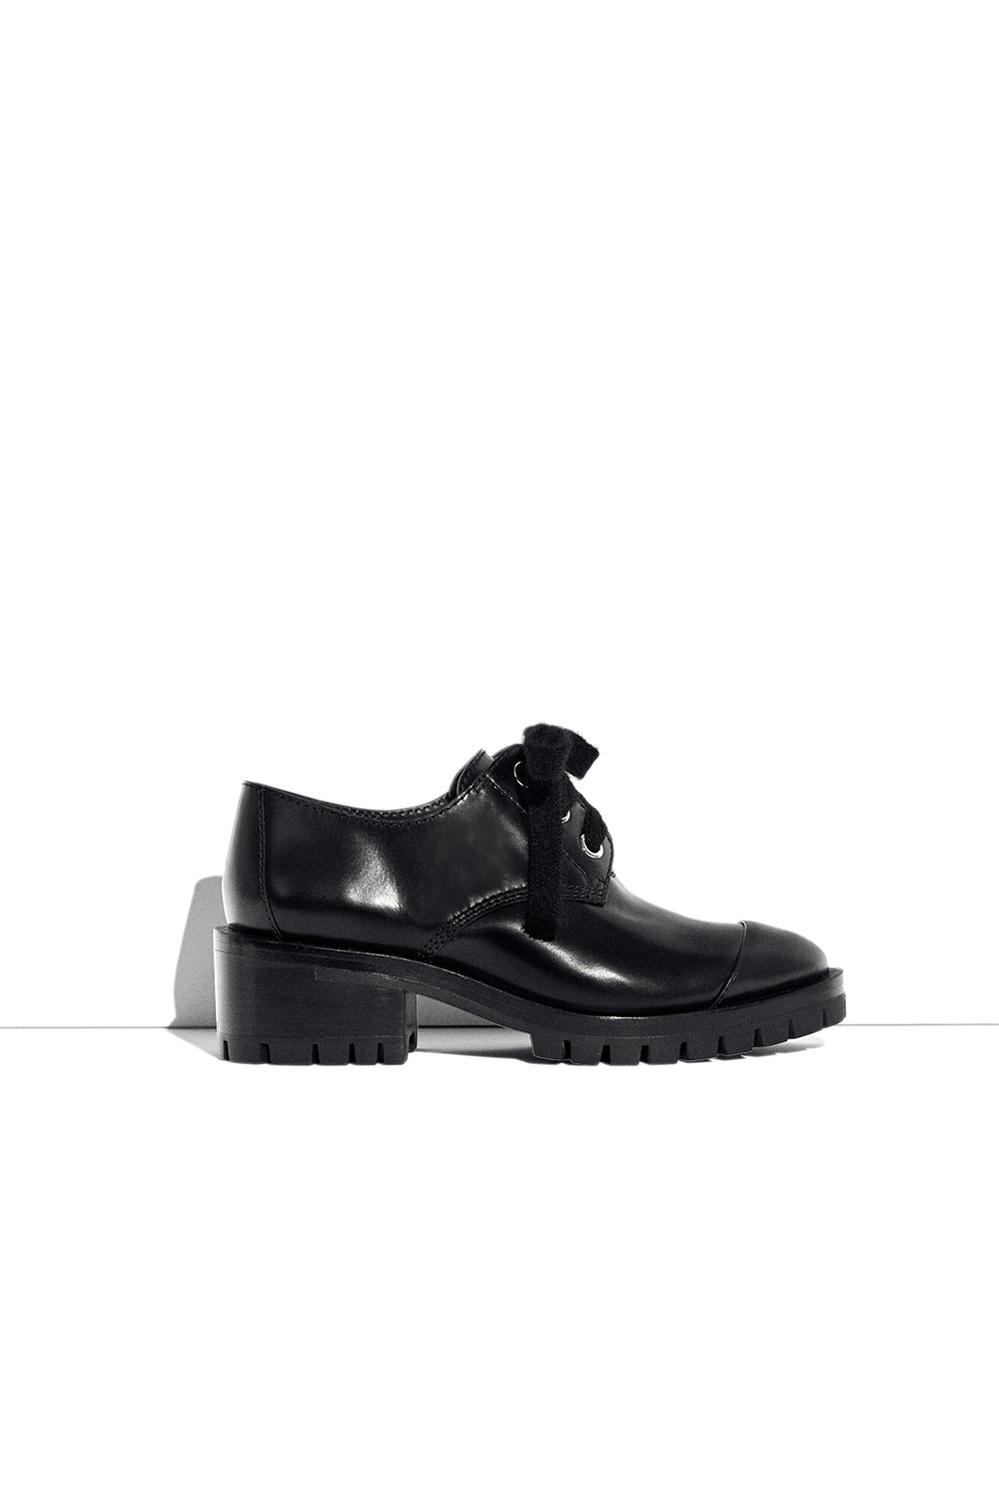 cheap top quality recommend cheap online 3.1 Phillip Lim Embellished Cap-Toe Oxfords cheap get to buy s6L1y8hjsF